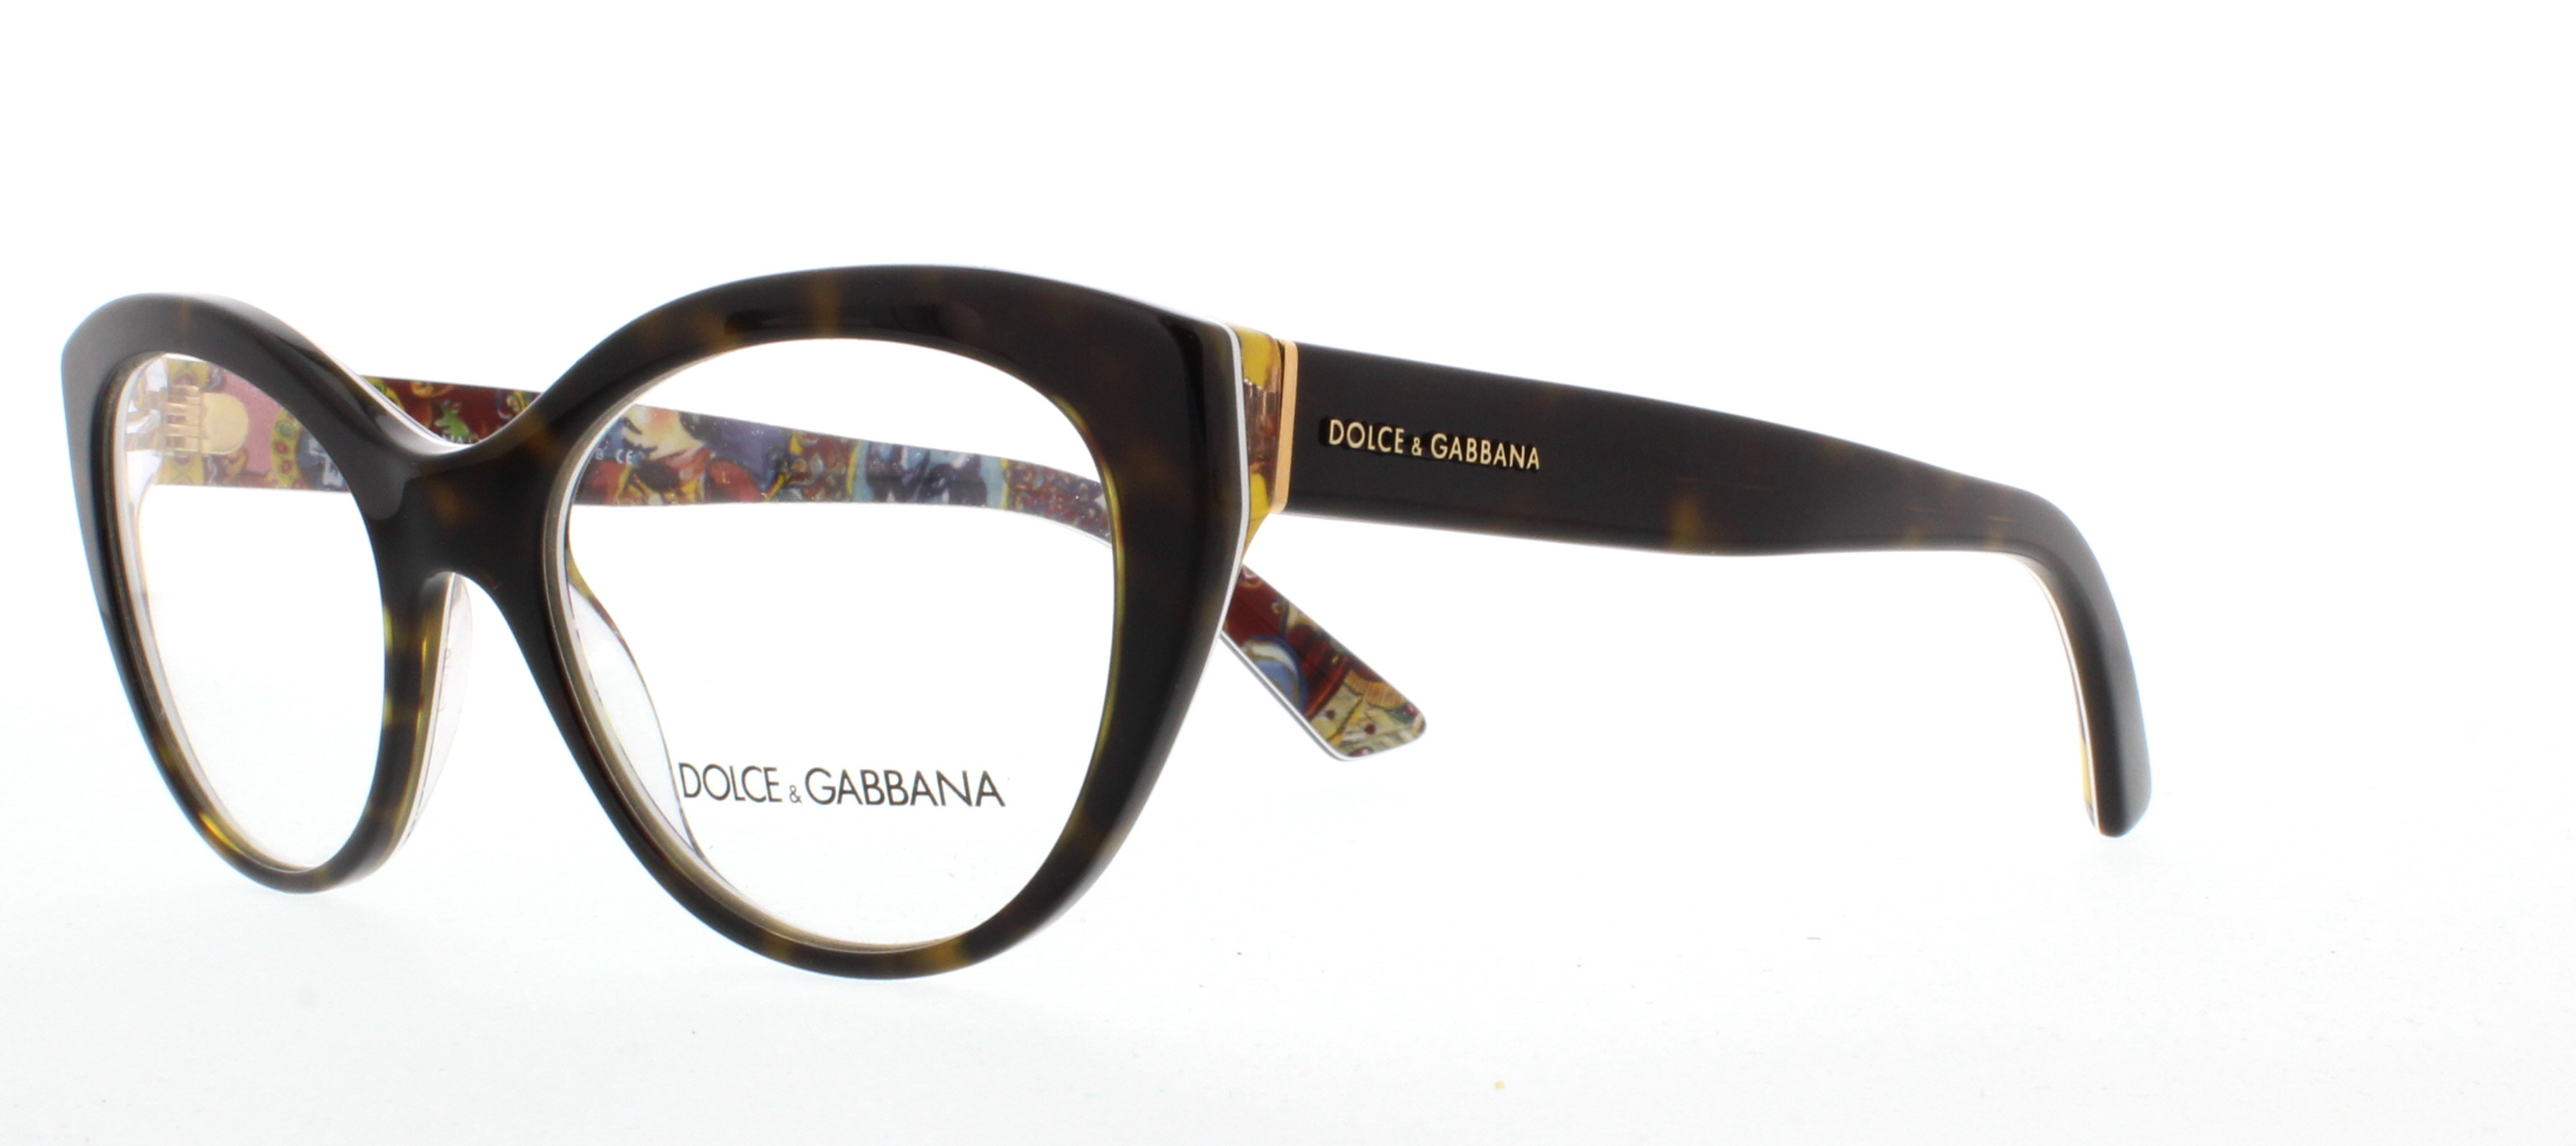 Picture of Dolce & Gabbana DG3246